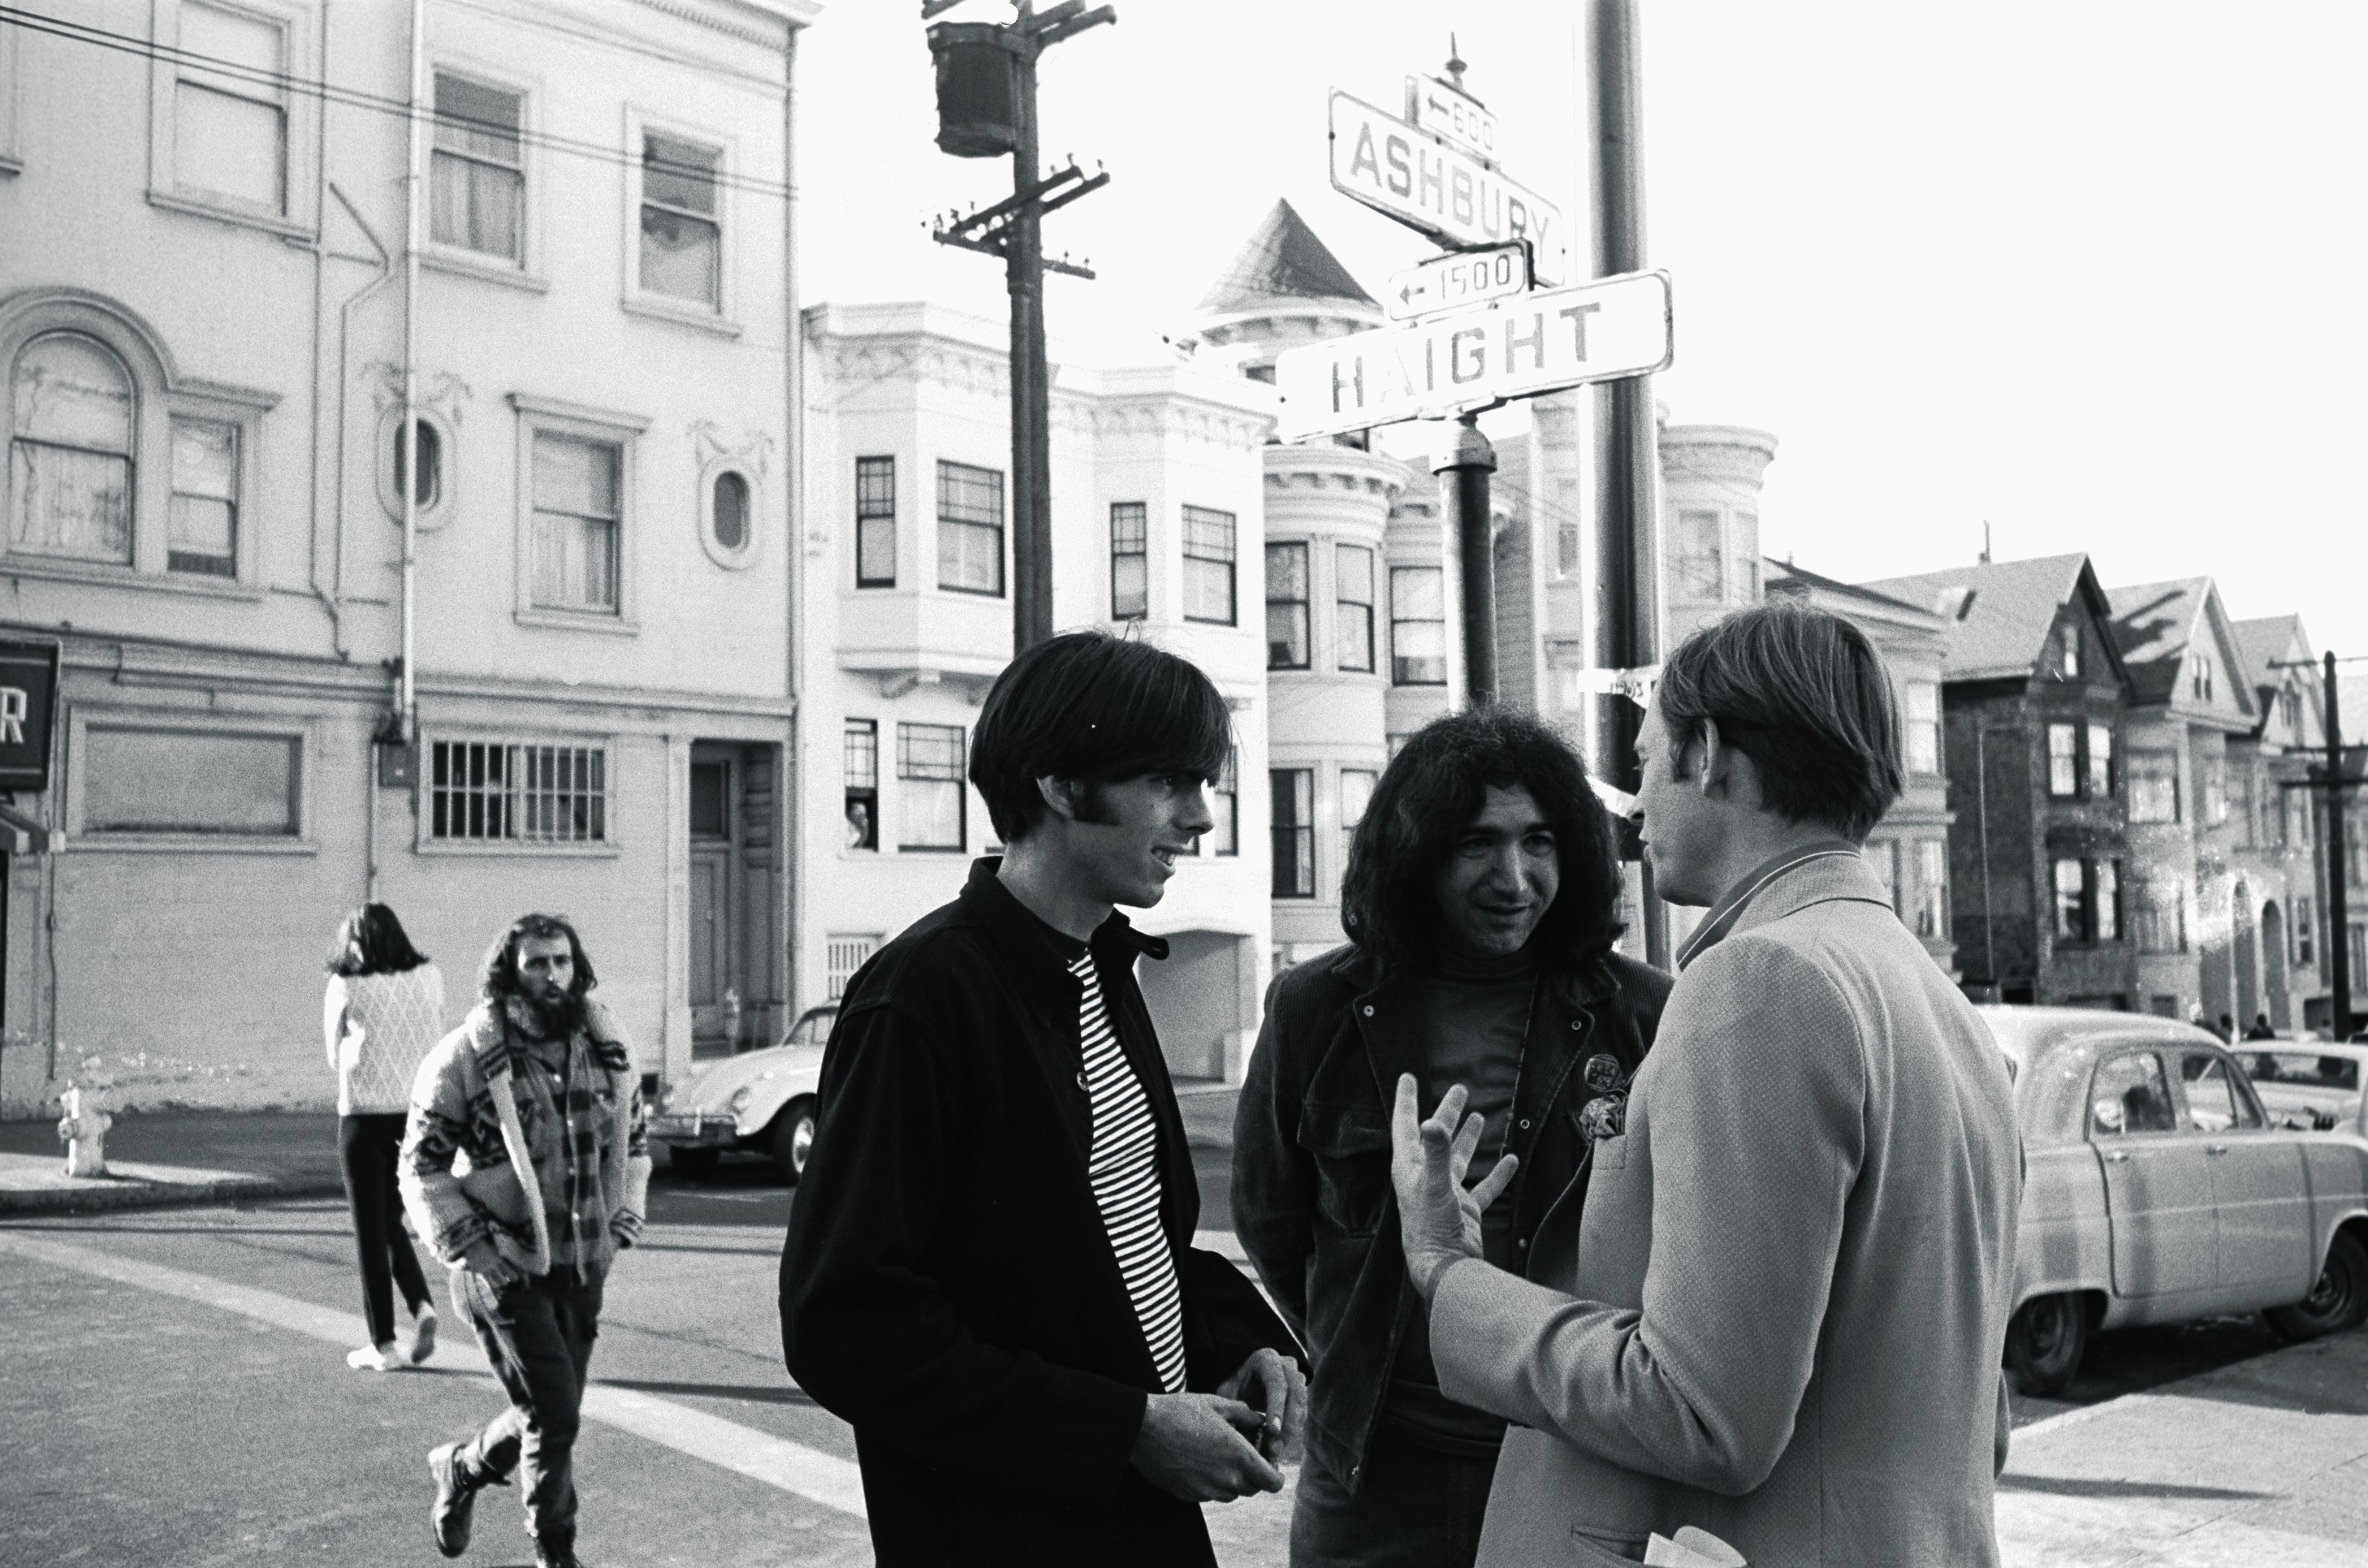 "<strong>The Electric Kool-Aid Acid Test</strong> The Dead gained its early audience by performing as the house band at the many LSD parties, known as ""acid tests,"" that were organized widely in the Bay Area in the mid-1960s. The scene, centered on the intersection of Haight and Ashbury streets, was later memorialized in a best-selling work by Tom Wolfe, who stands with Garcia and Dead manager Rock Sculley in this 1966 photo."